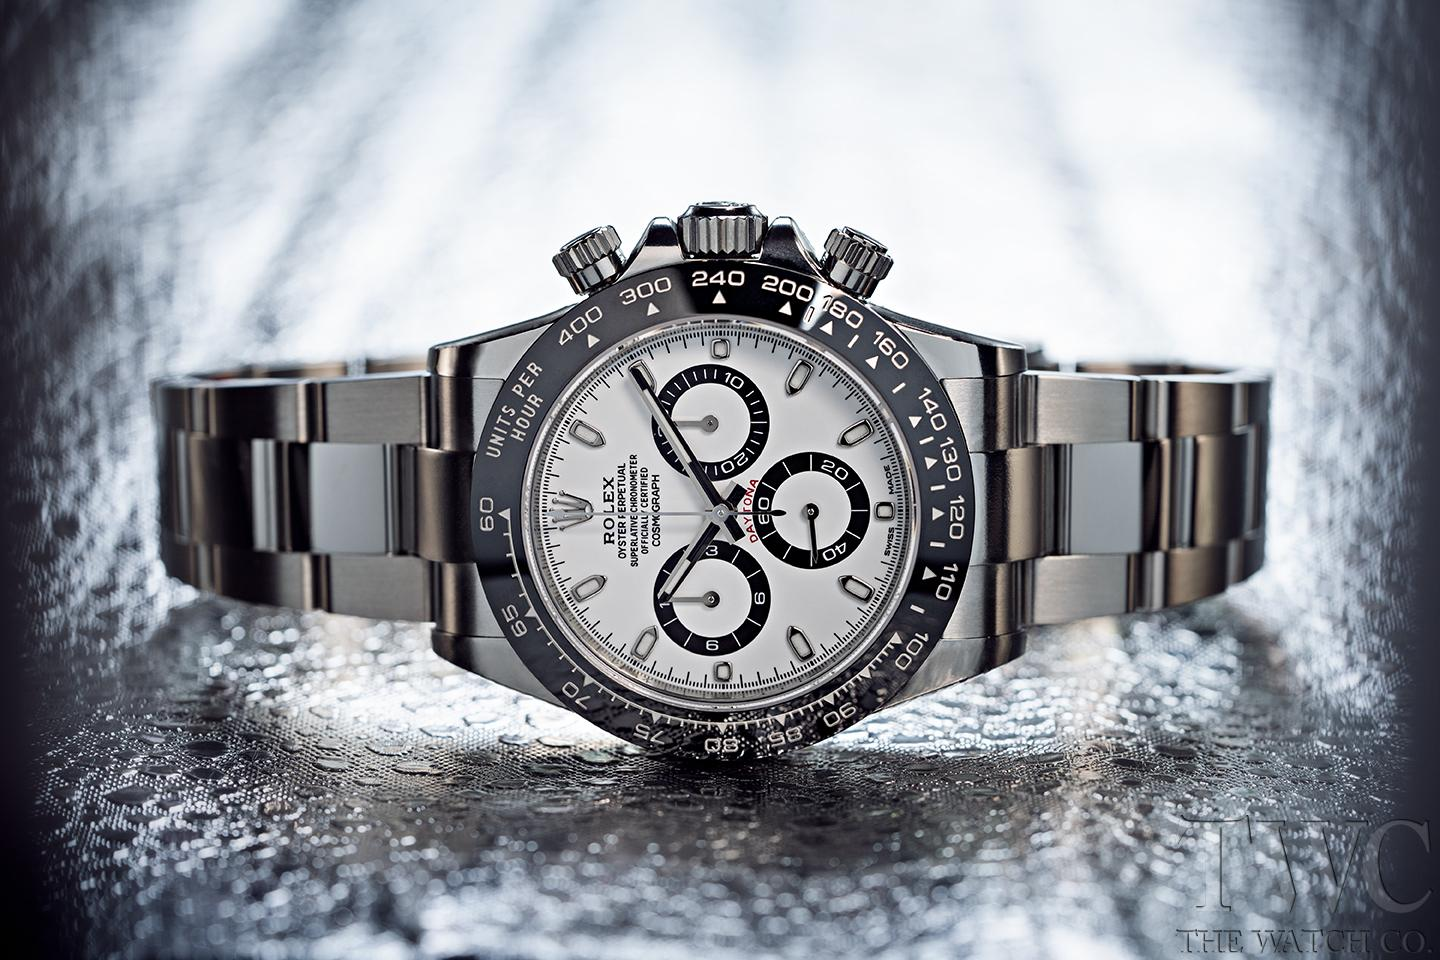 7 Reasons Why You Should Buy A Chronograph Watch